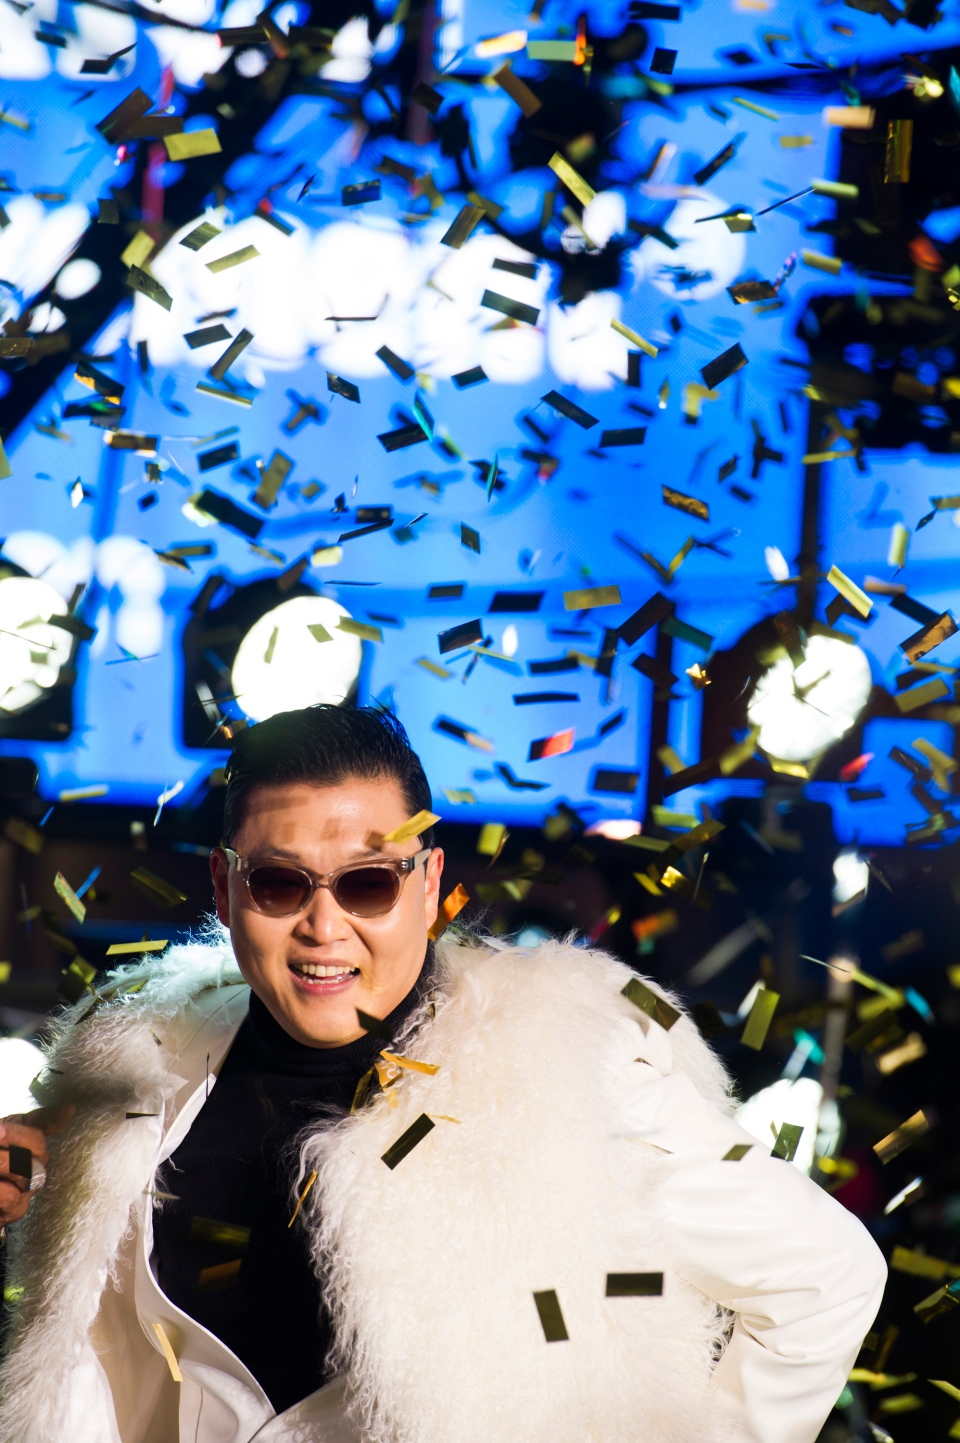 Psy performs in Times Square during New Year's Eve celebrations on Monday, Dec. 31, 2012 in New York. (AP / Charles Sykes / Invision)